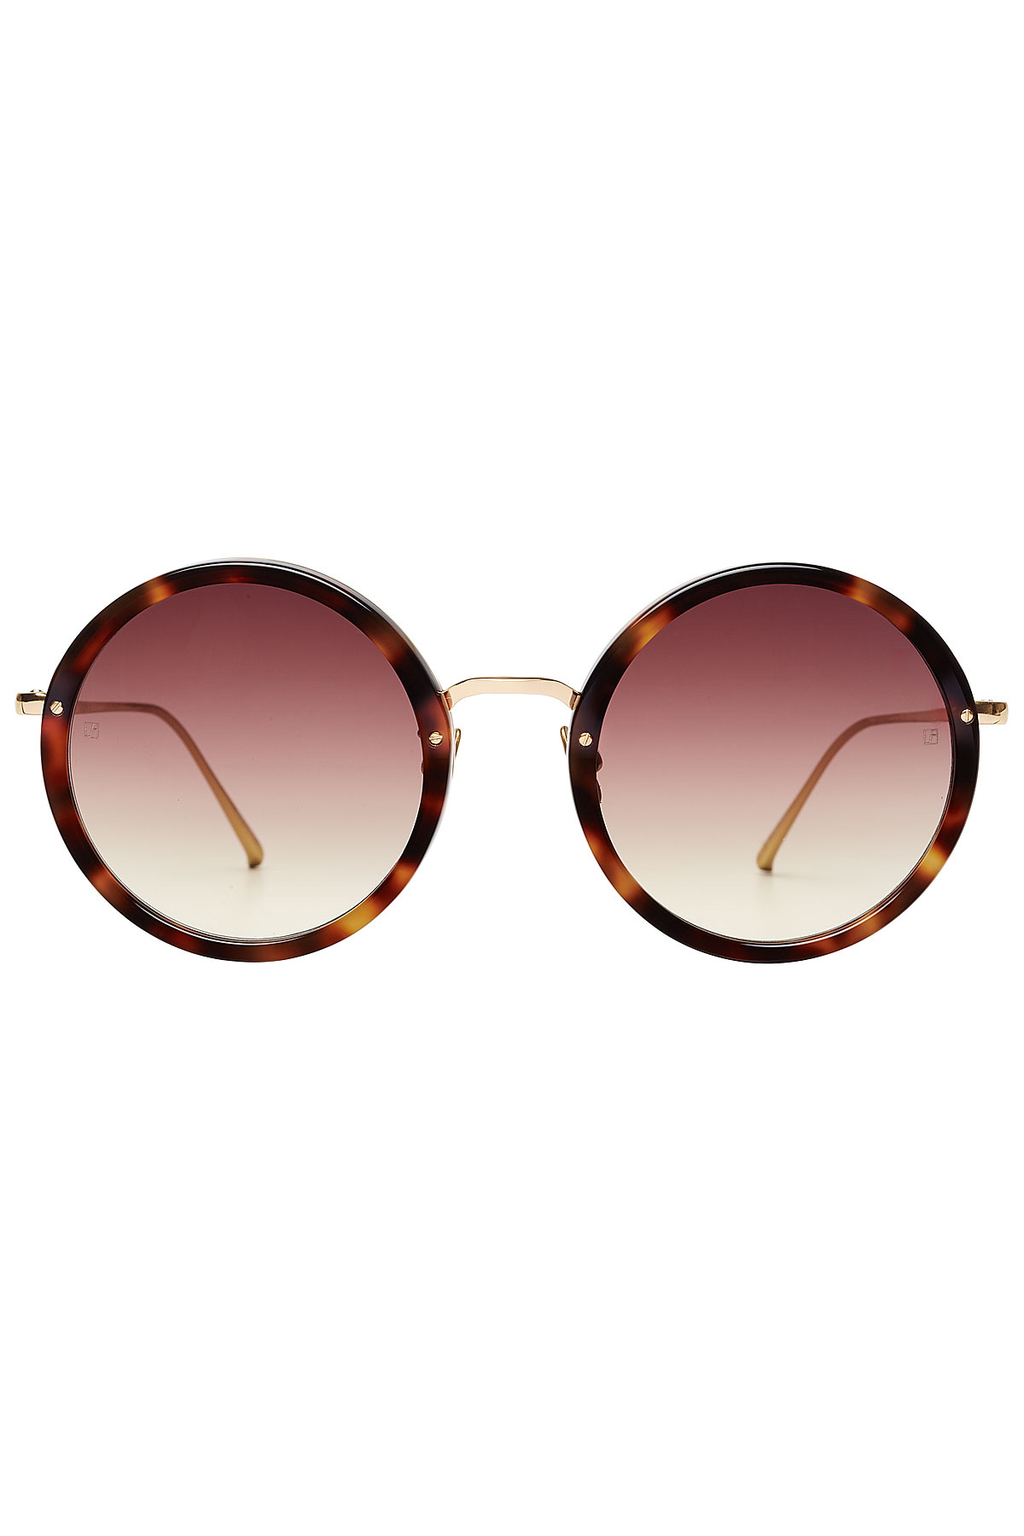 Gold Plated Round Sunglasses Gold - predominant colour: gold; occasions: casual, holiday; style: round; size: standard; material: plastic/rubber; pattern: tortoiseshell; finish: plain; season: s/s 2016